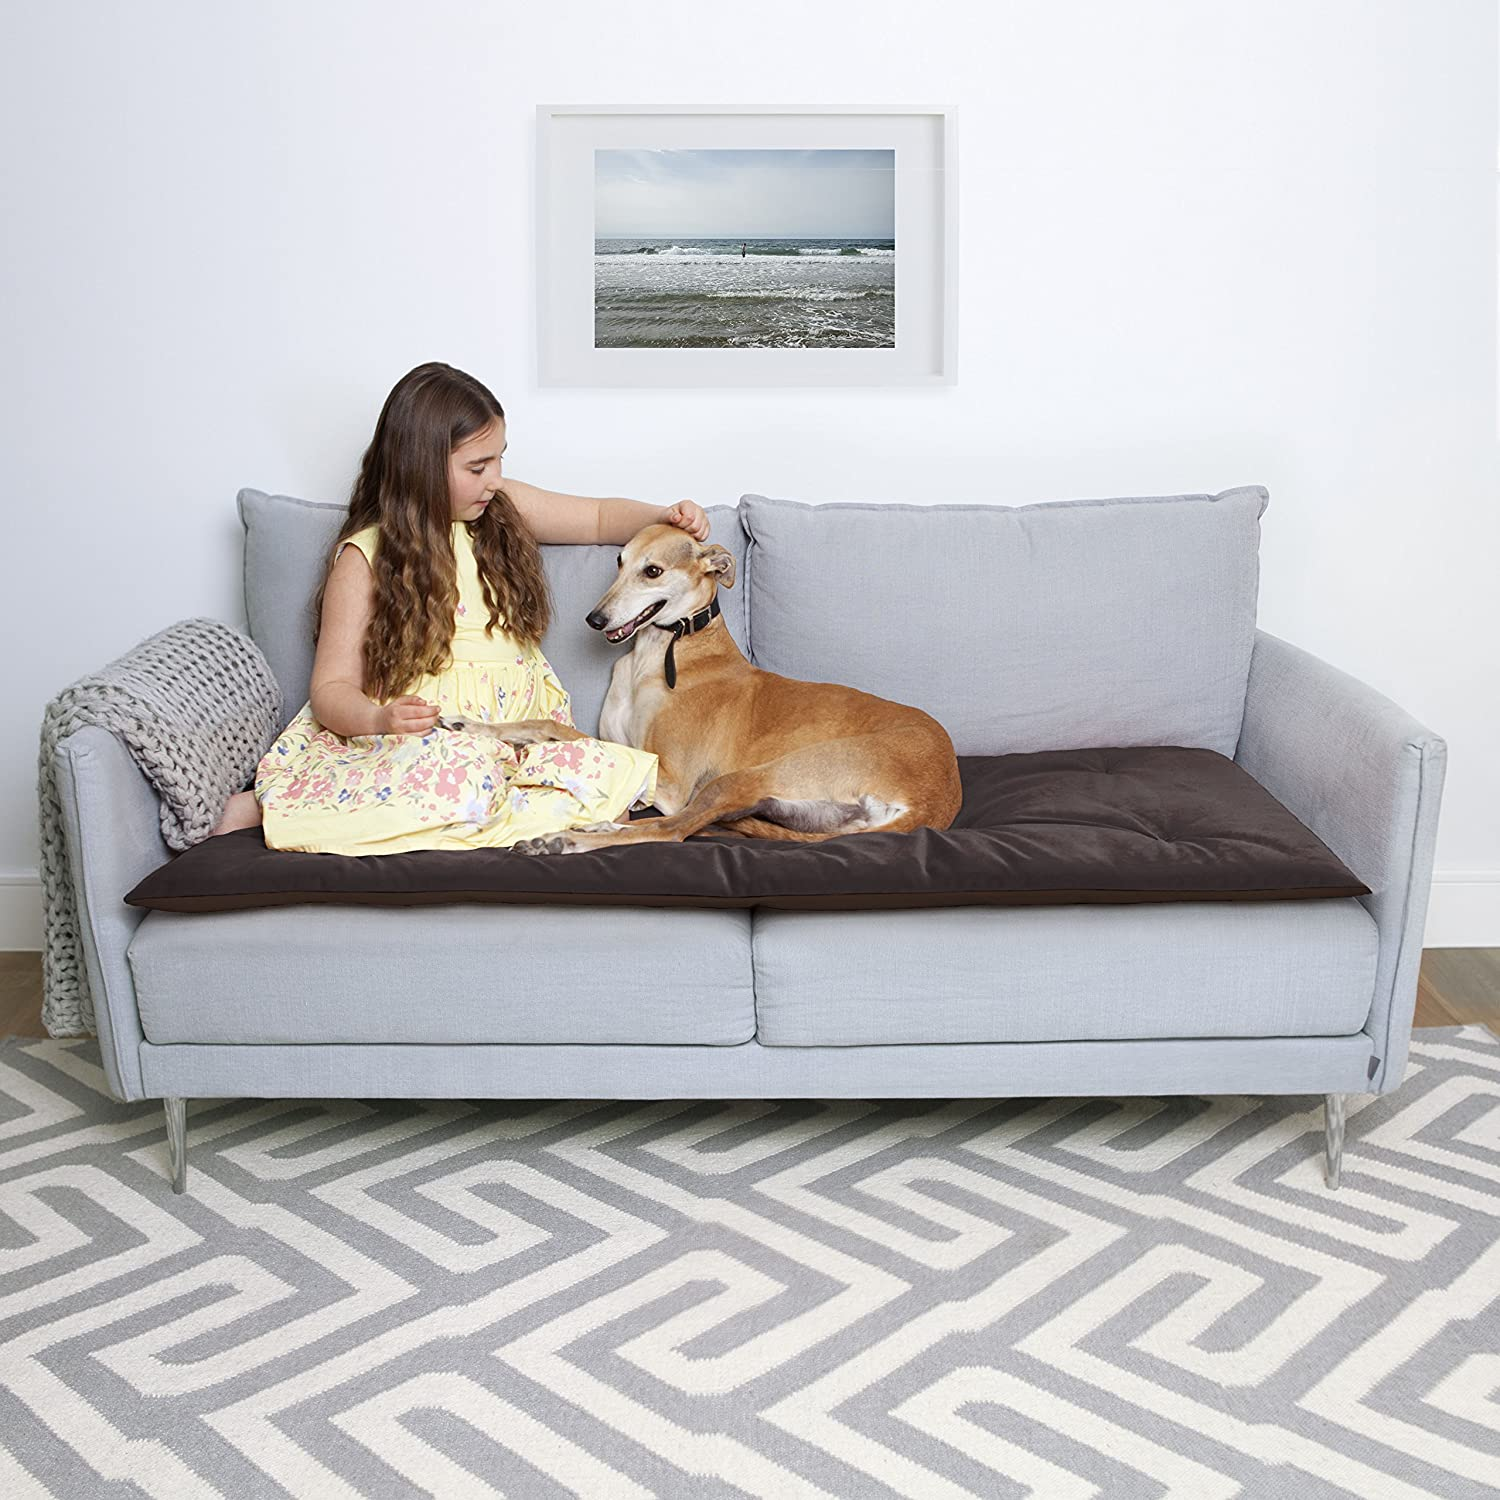 'Lounging 'Lounging 'Lounging Hound lusso Pet impermeabile velluto divano topper ae4abe